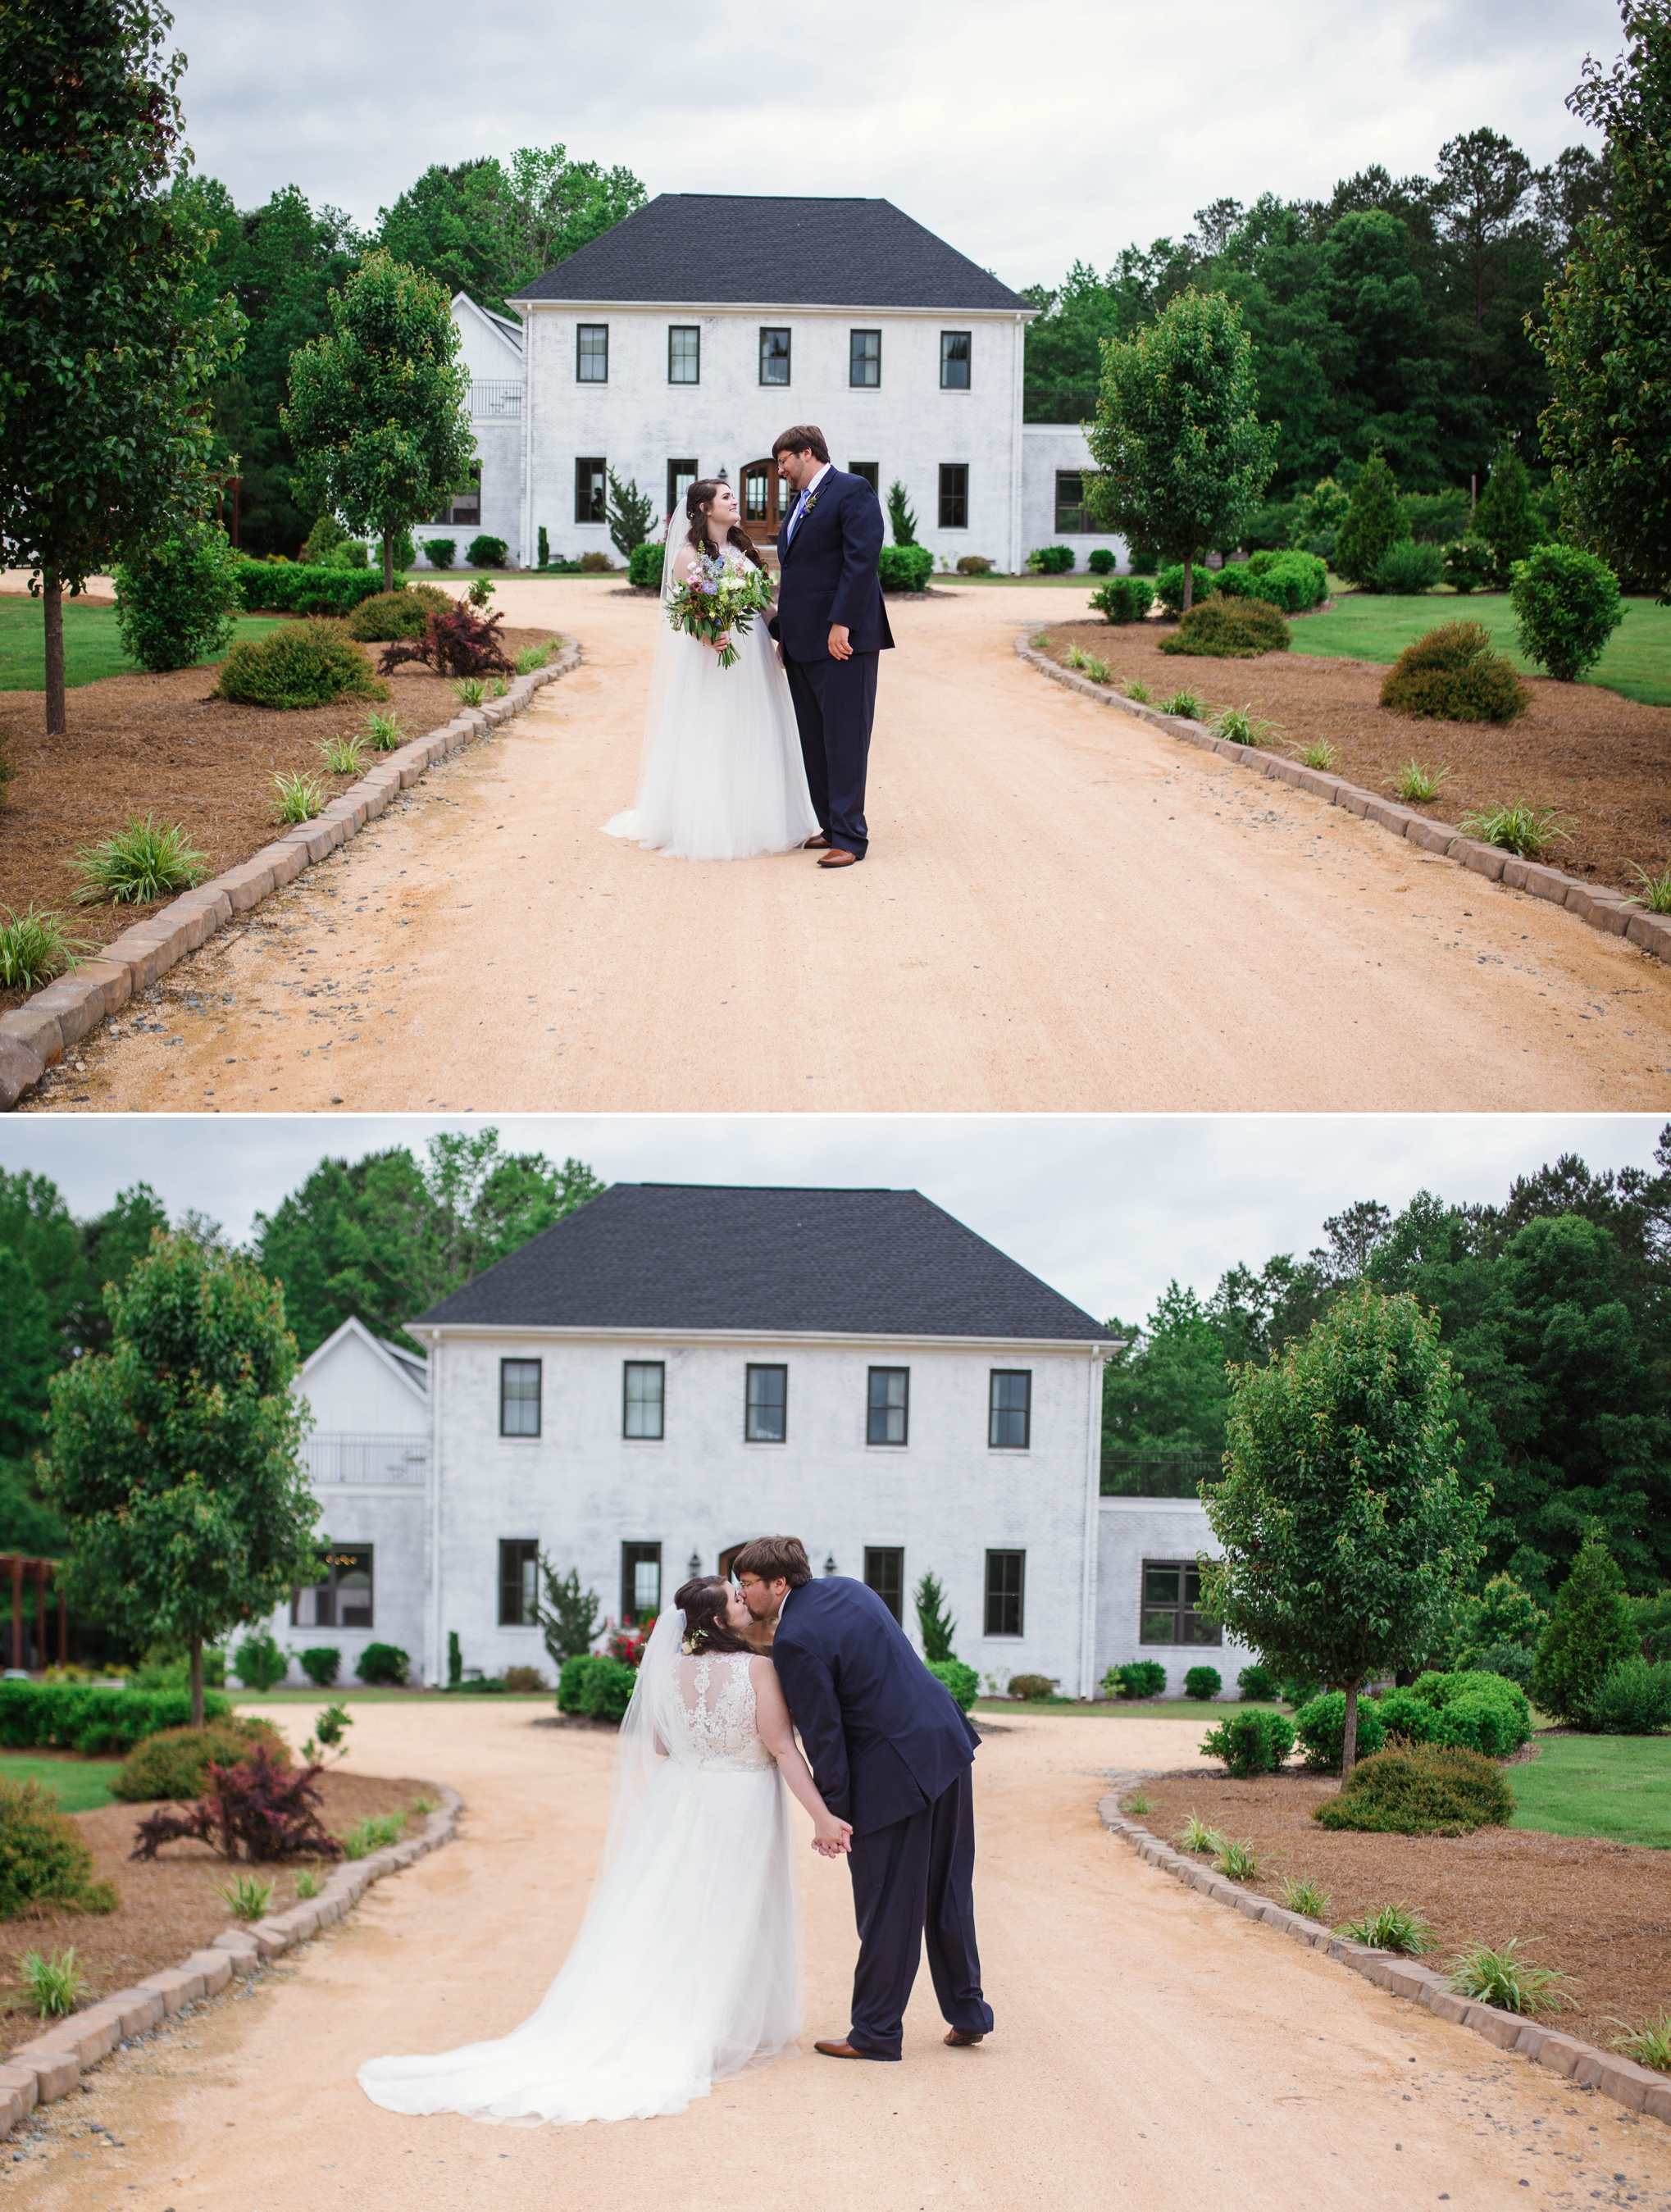 Natalie + Zach - Wedding Photography at the Bradford in New Hill North Carolina - Raleigh NC Photographer